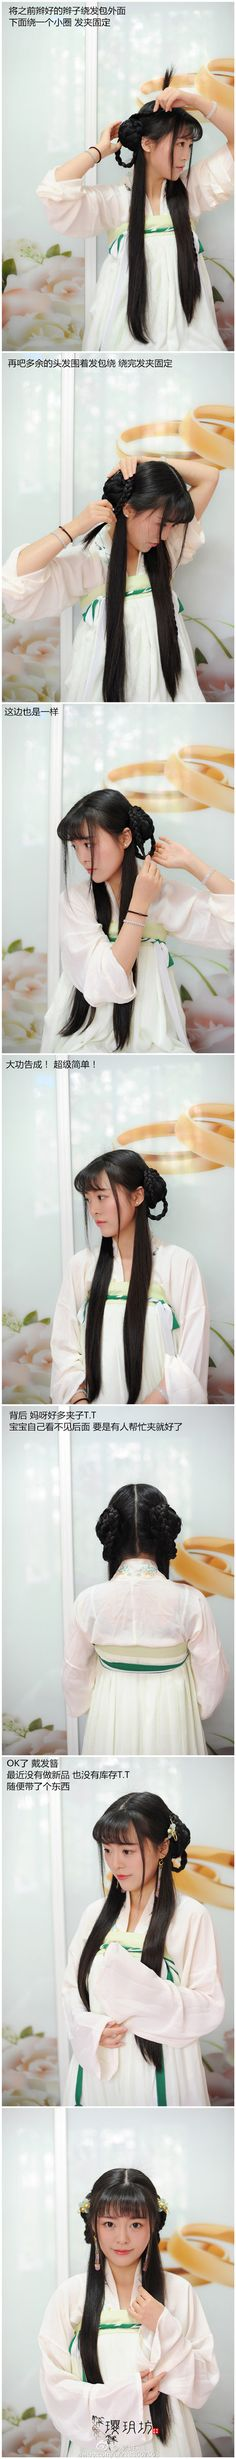 Hairstyle for hanfu - Part 2 of 2